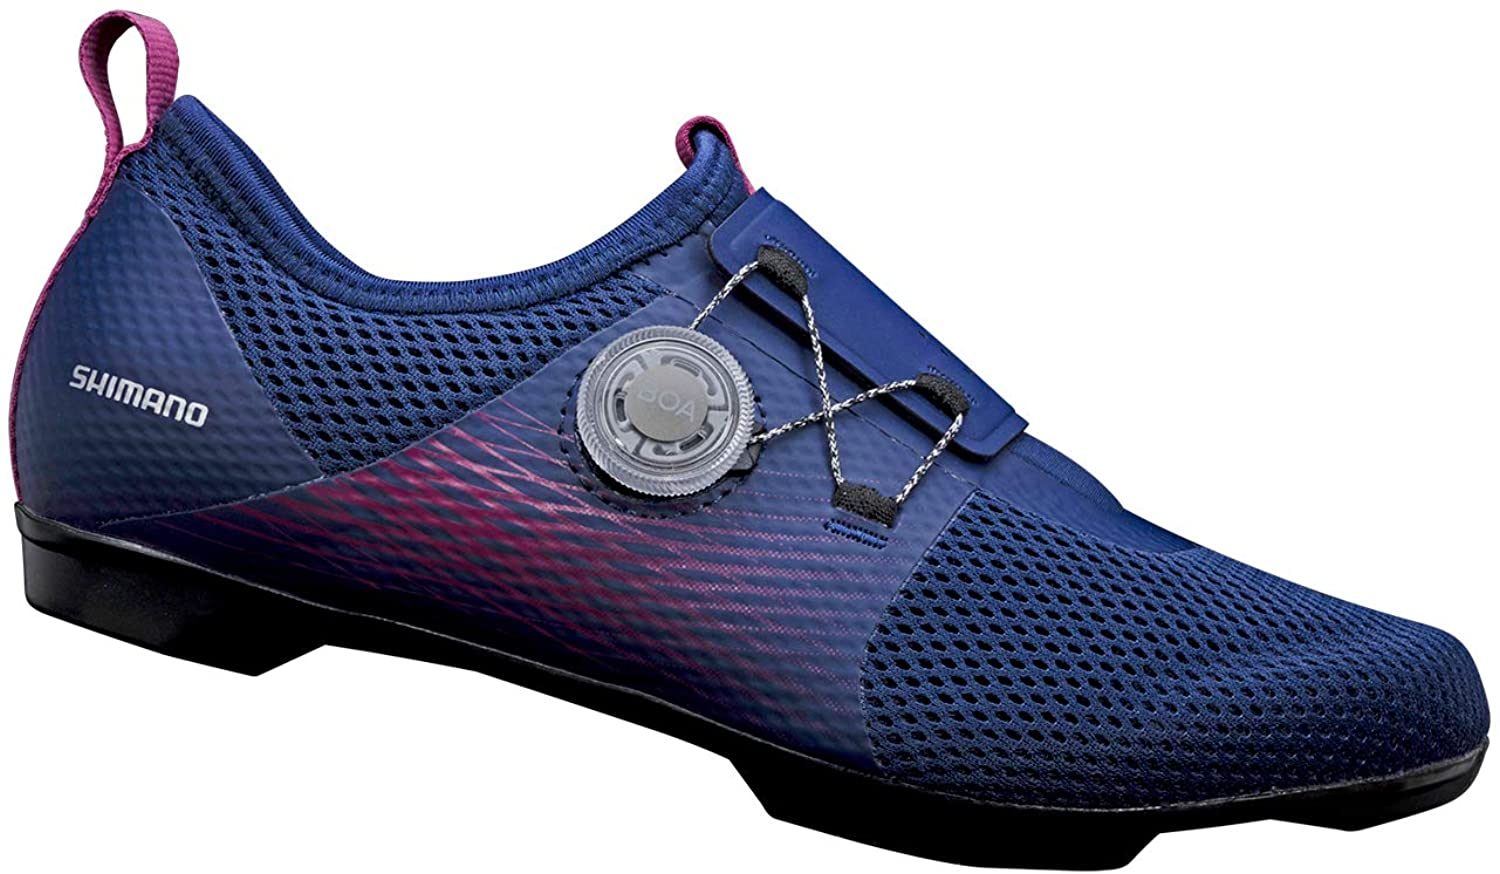 SHIMANO SH-IC500 OFFicial mail order High All items in the store Performance Cycling Indoor Shoe